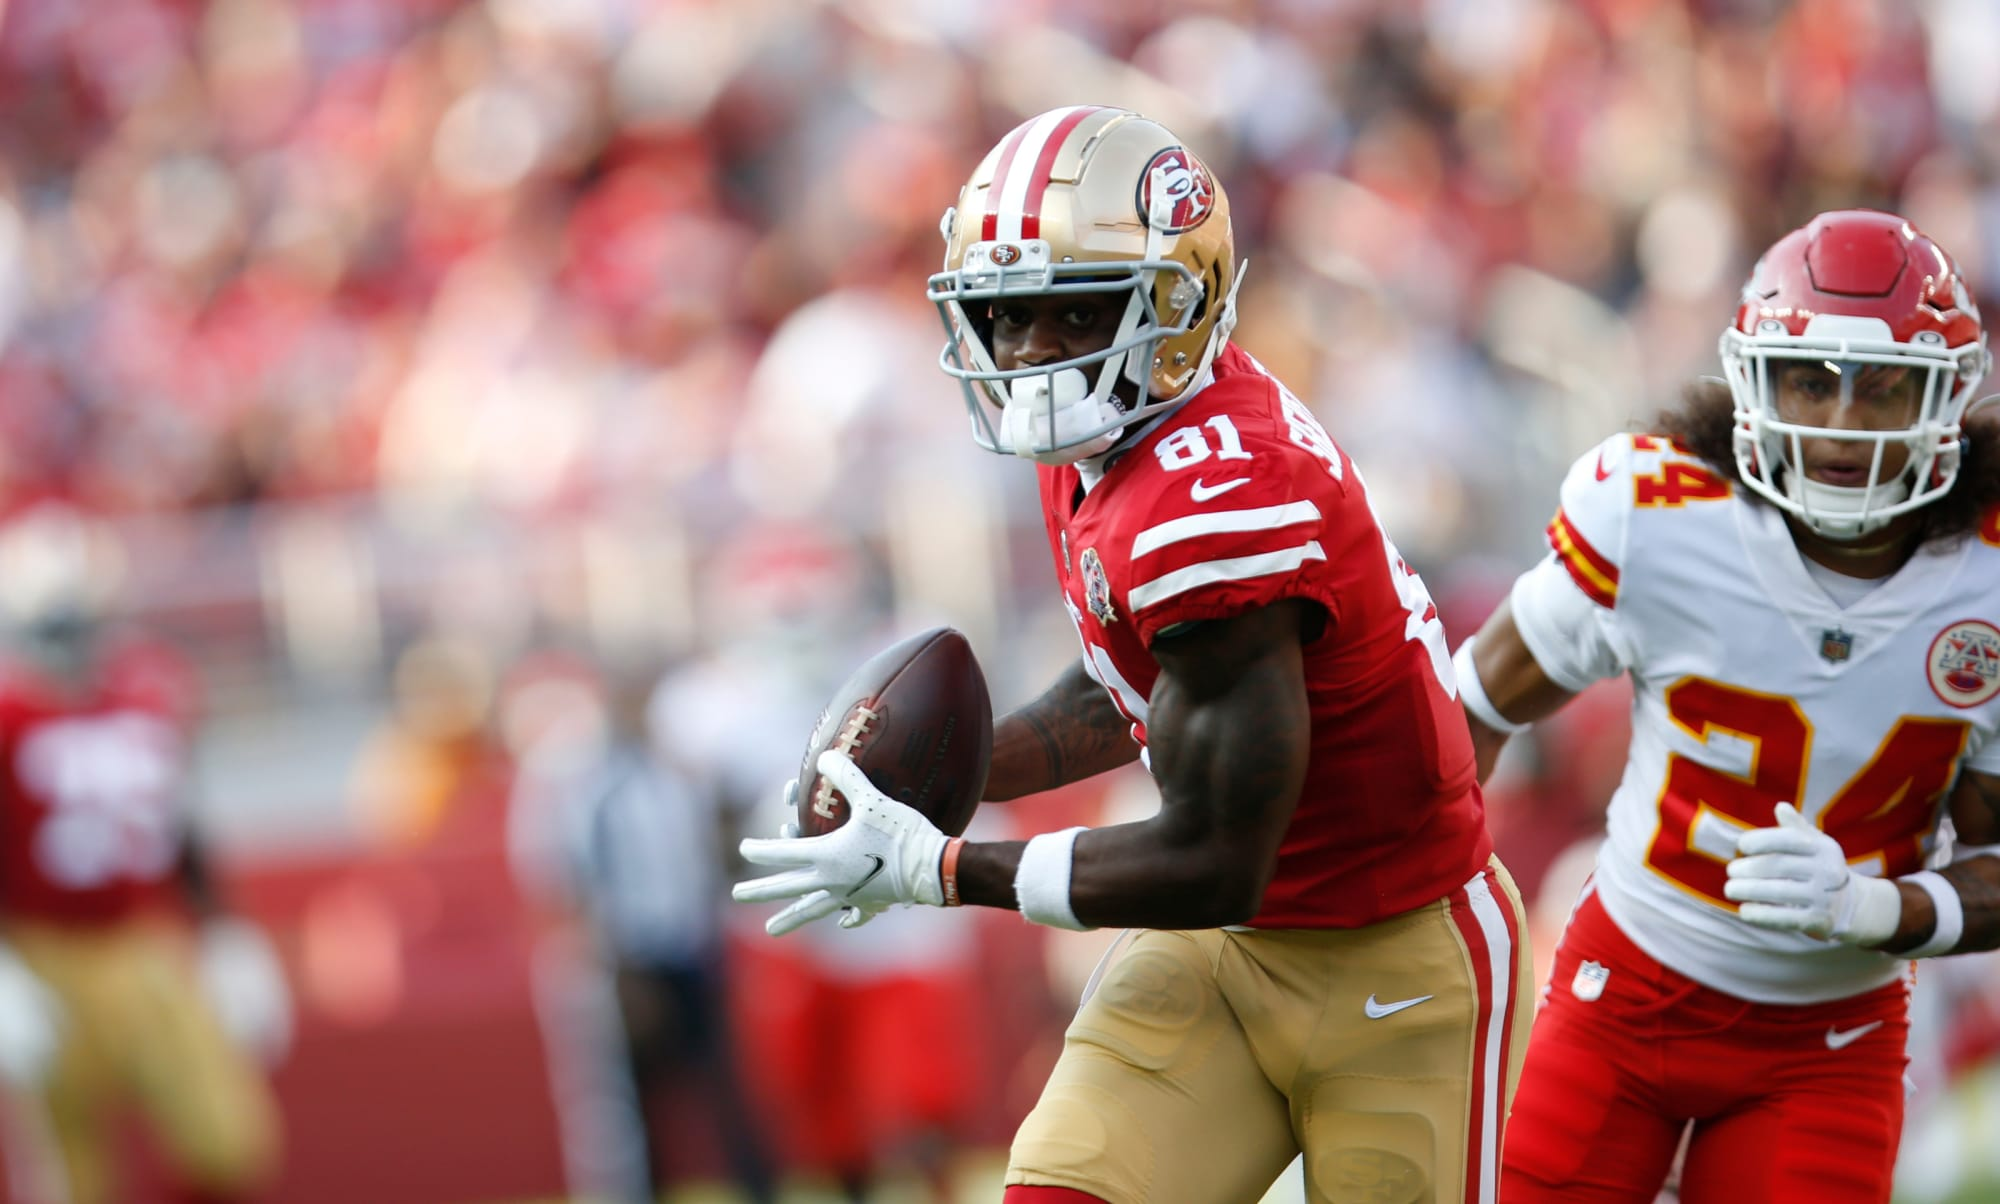 Trent Sherfield must do one more thing to be 49ers 3rd receiver - Niner Noise